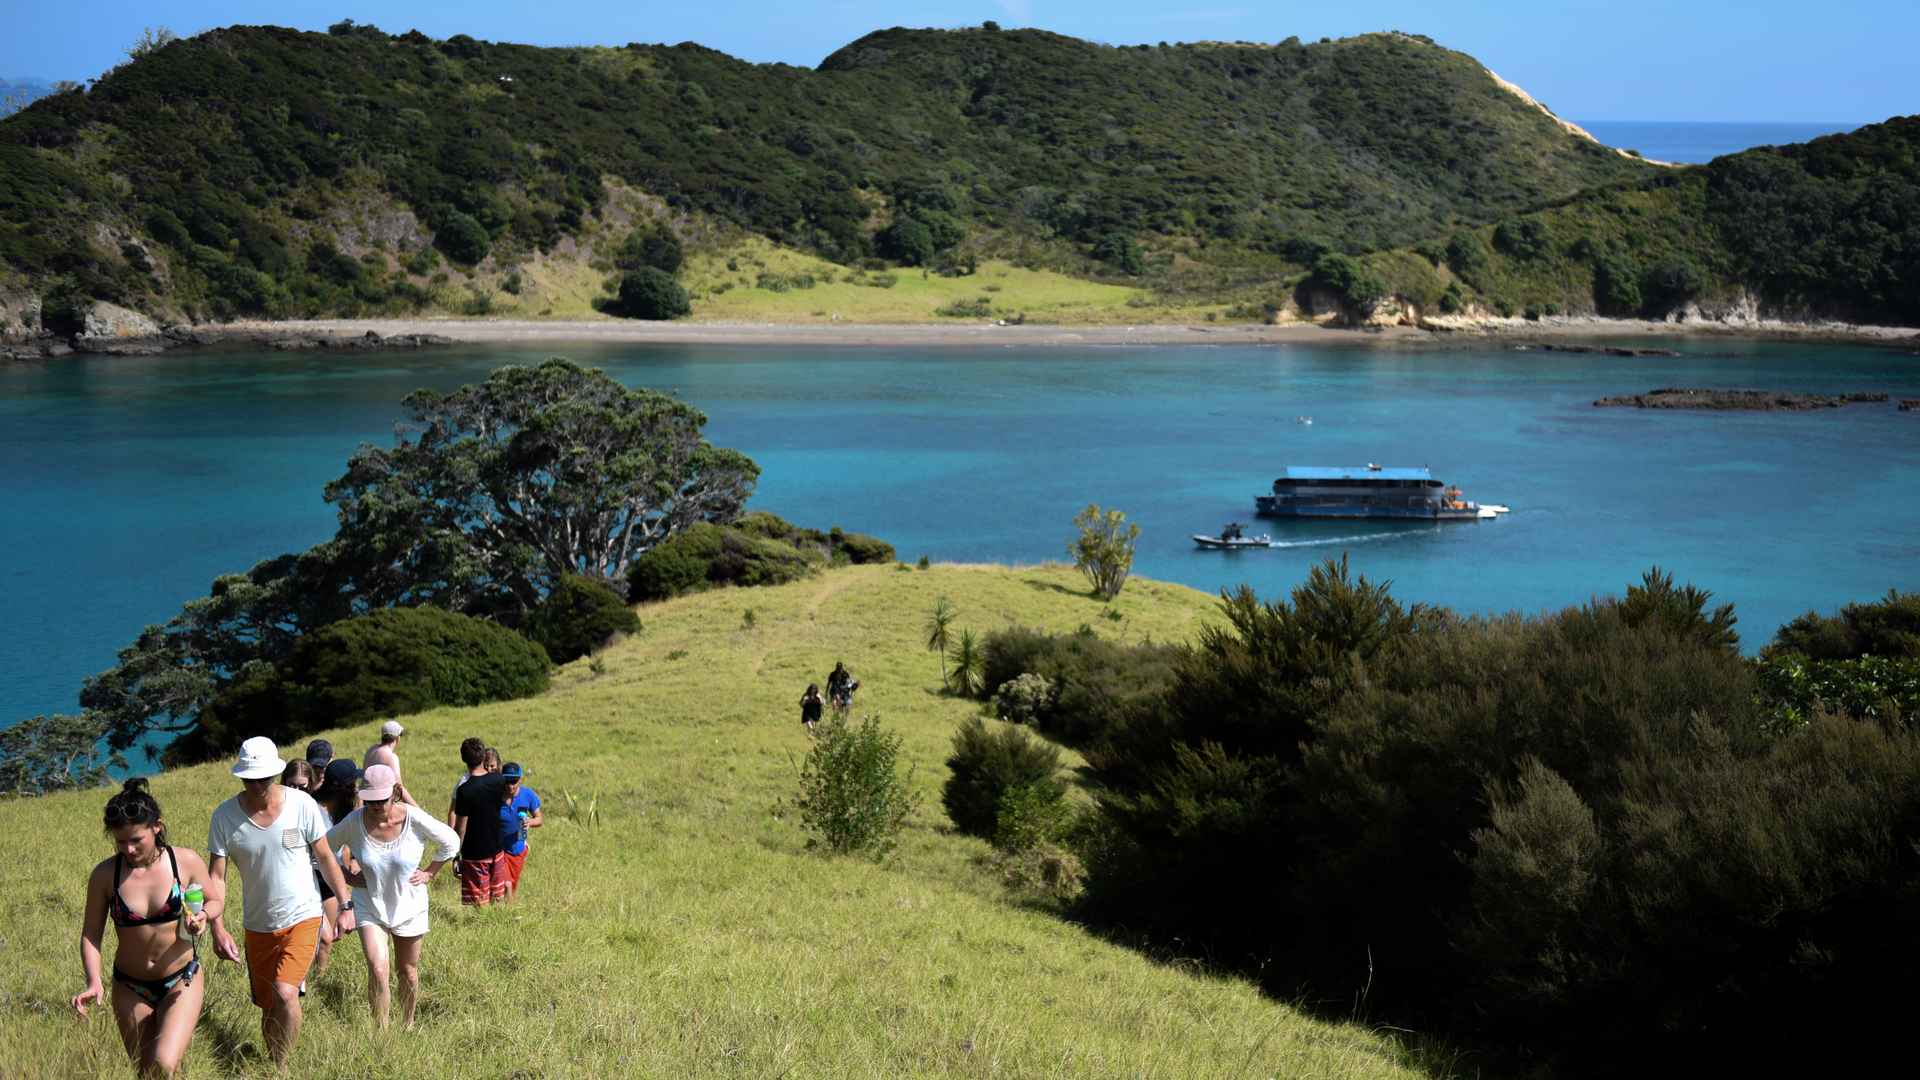 view overlooking pahia bay of islands new zealand and The Rock boat